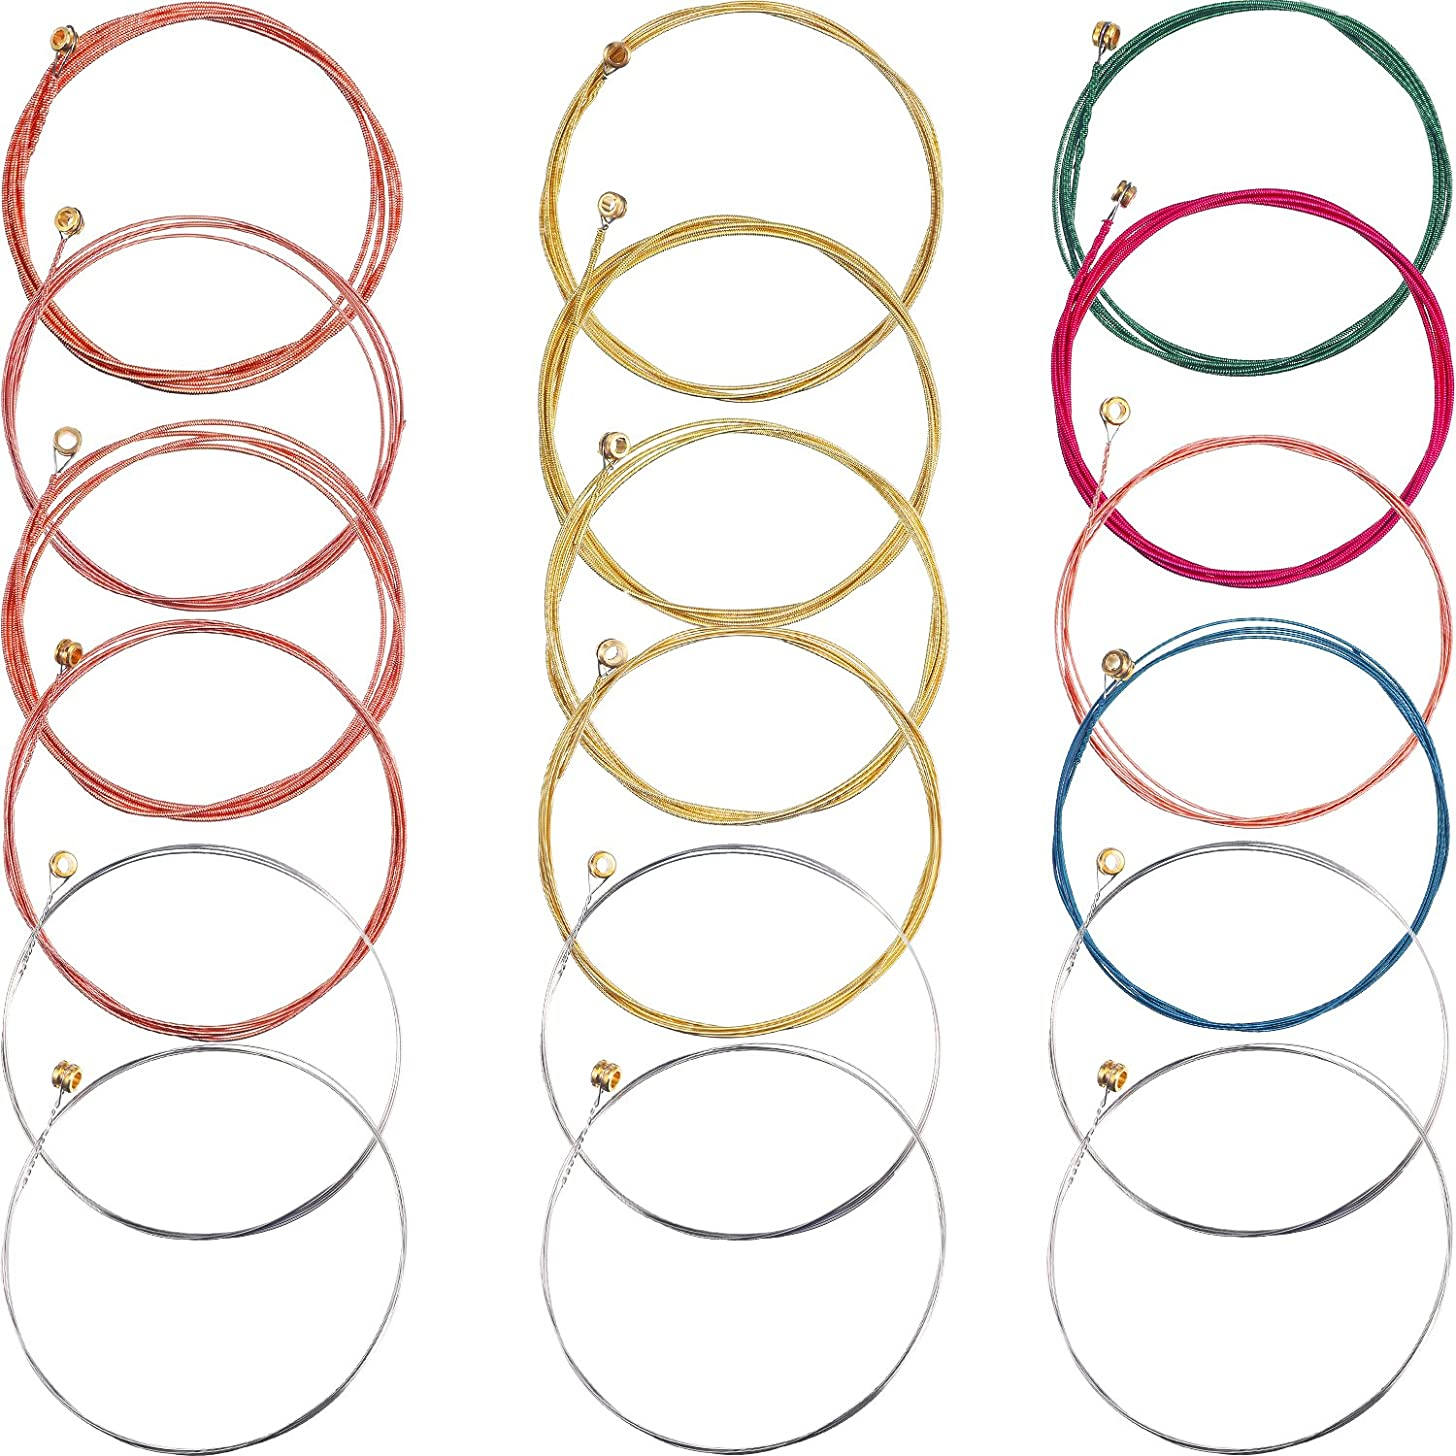 Bememo 3 Sets of 6 Guitar Strings Replacement Steel String for Acoustic Guitar (1 Brass Set, 1 Copper Set and 1 Multicolor Set)